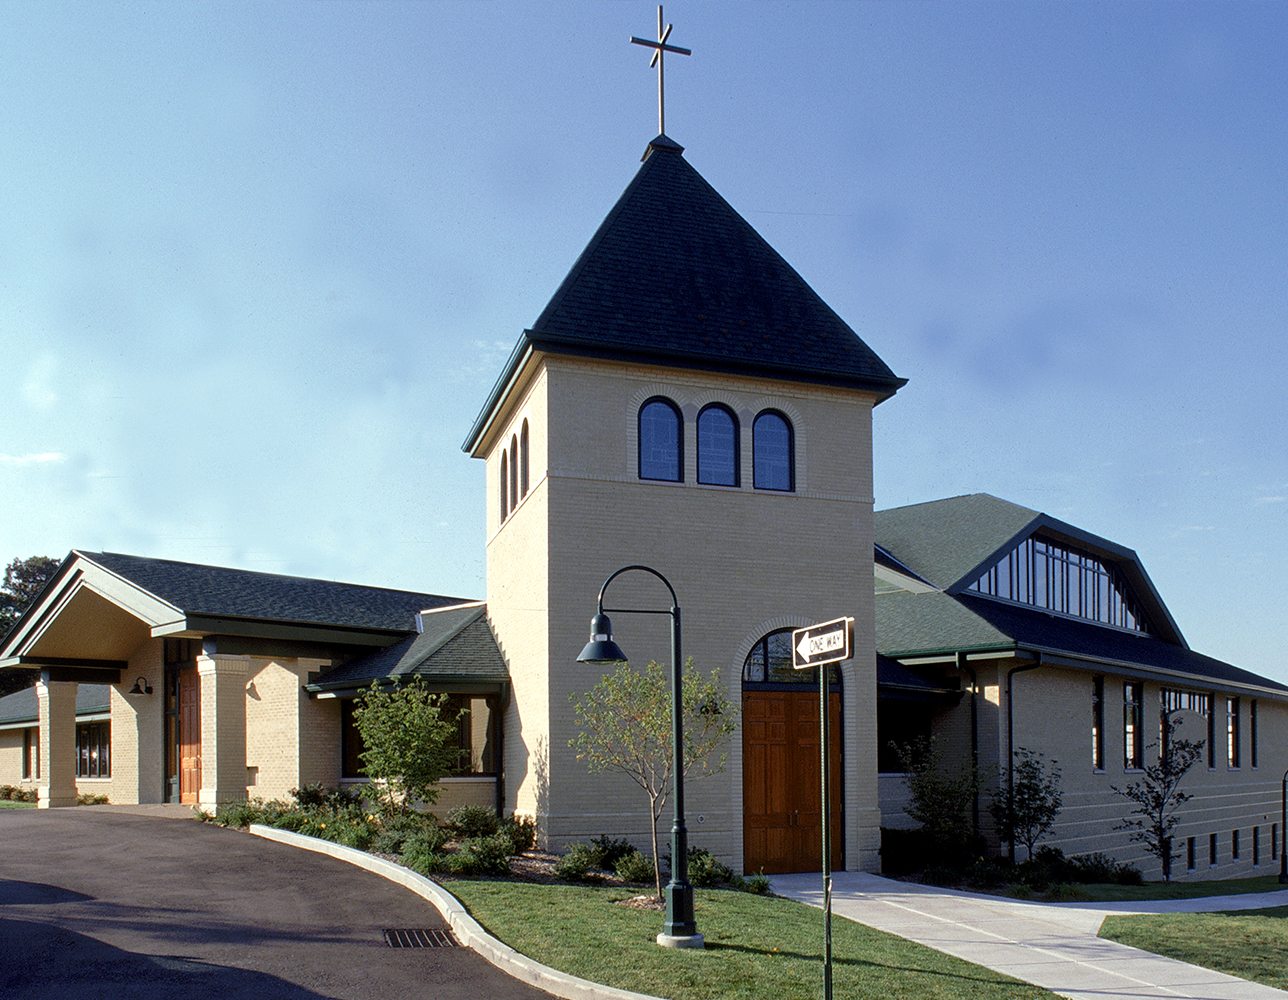 ST. BONAVENTURE CATHOLIC CHURCH